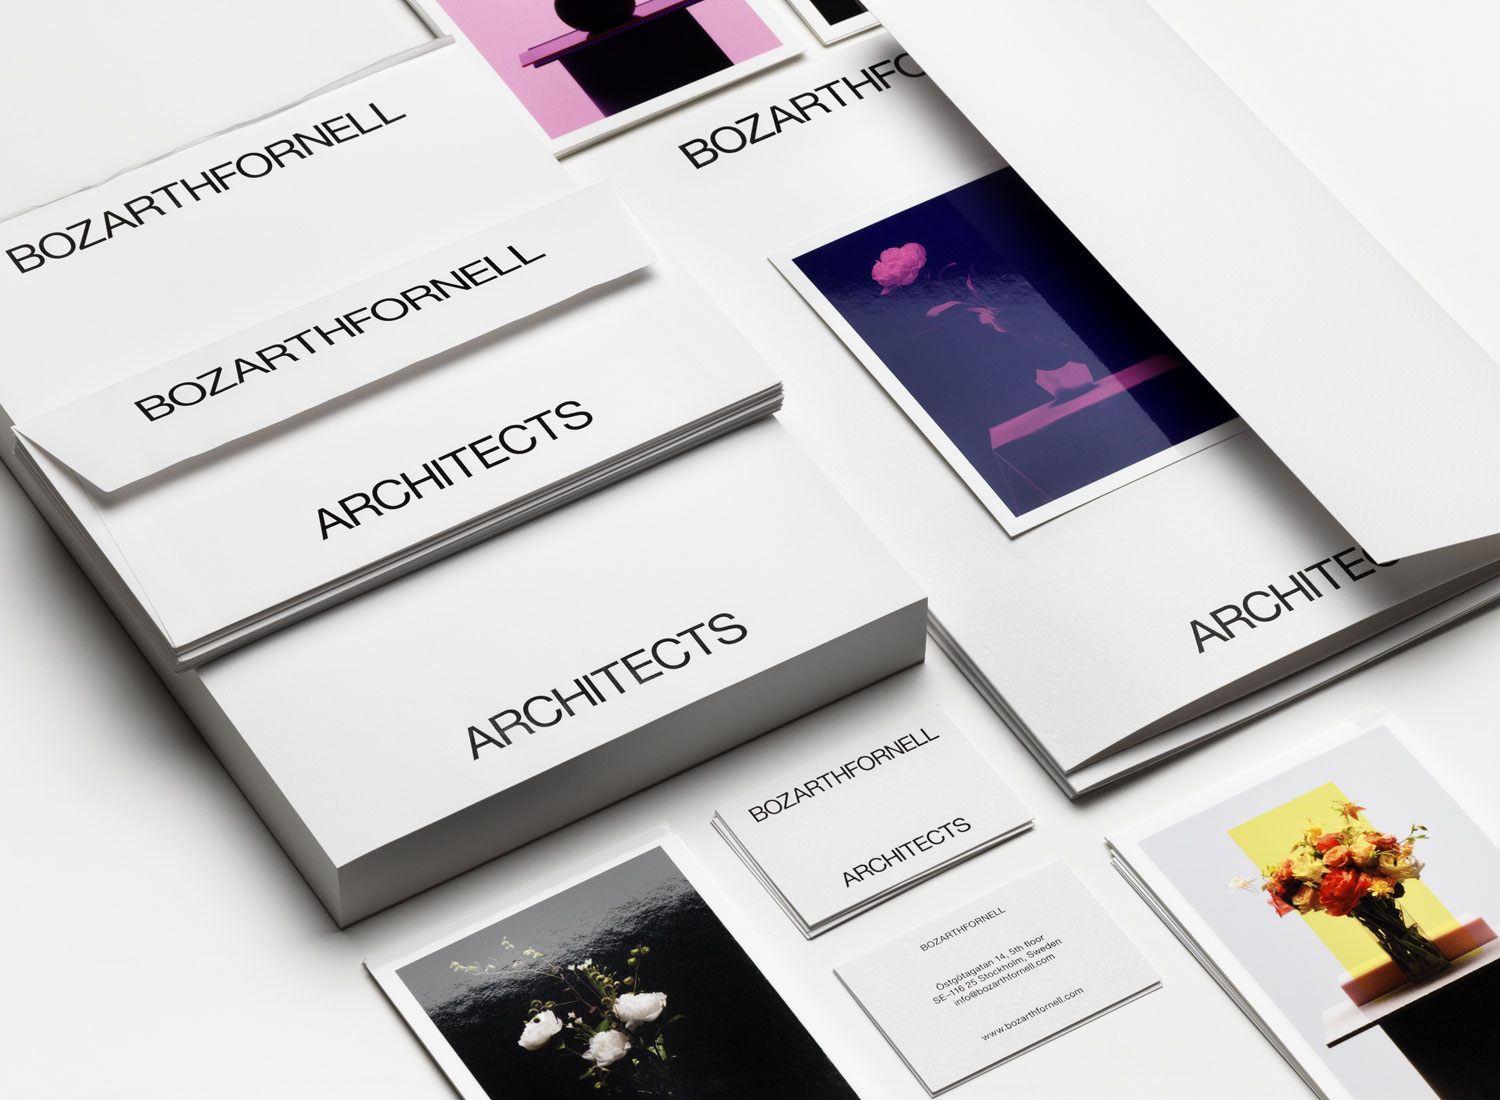 BOZARTHFORNELL ARCHITECTS Branding and stationaries